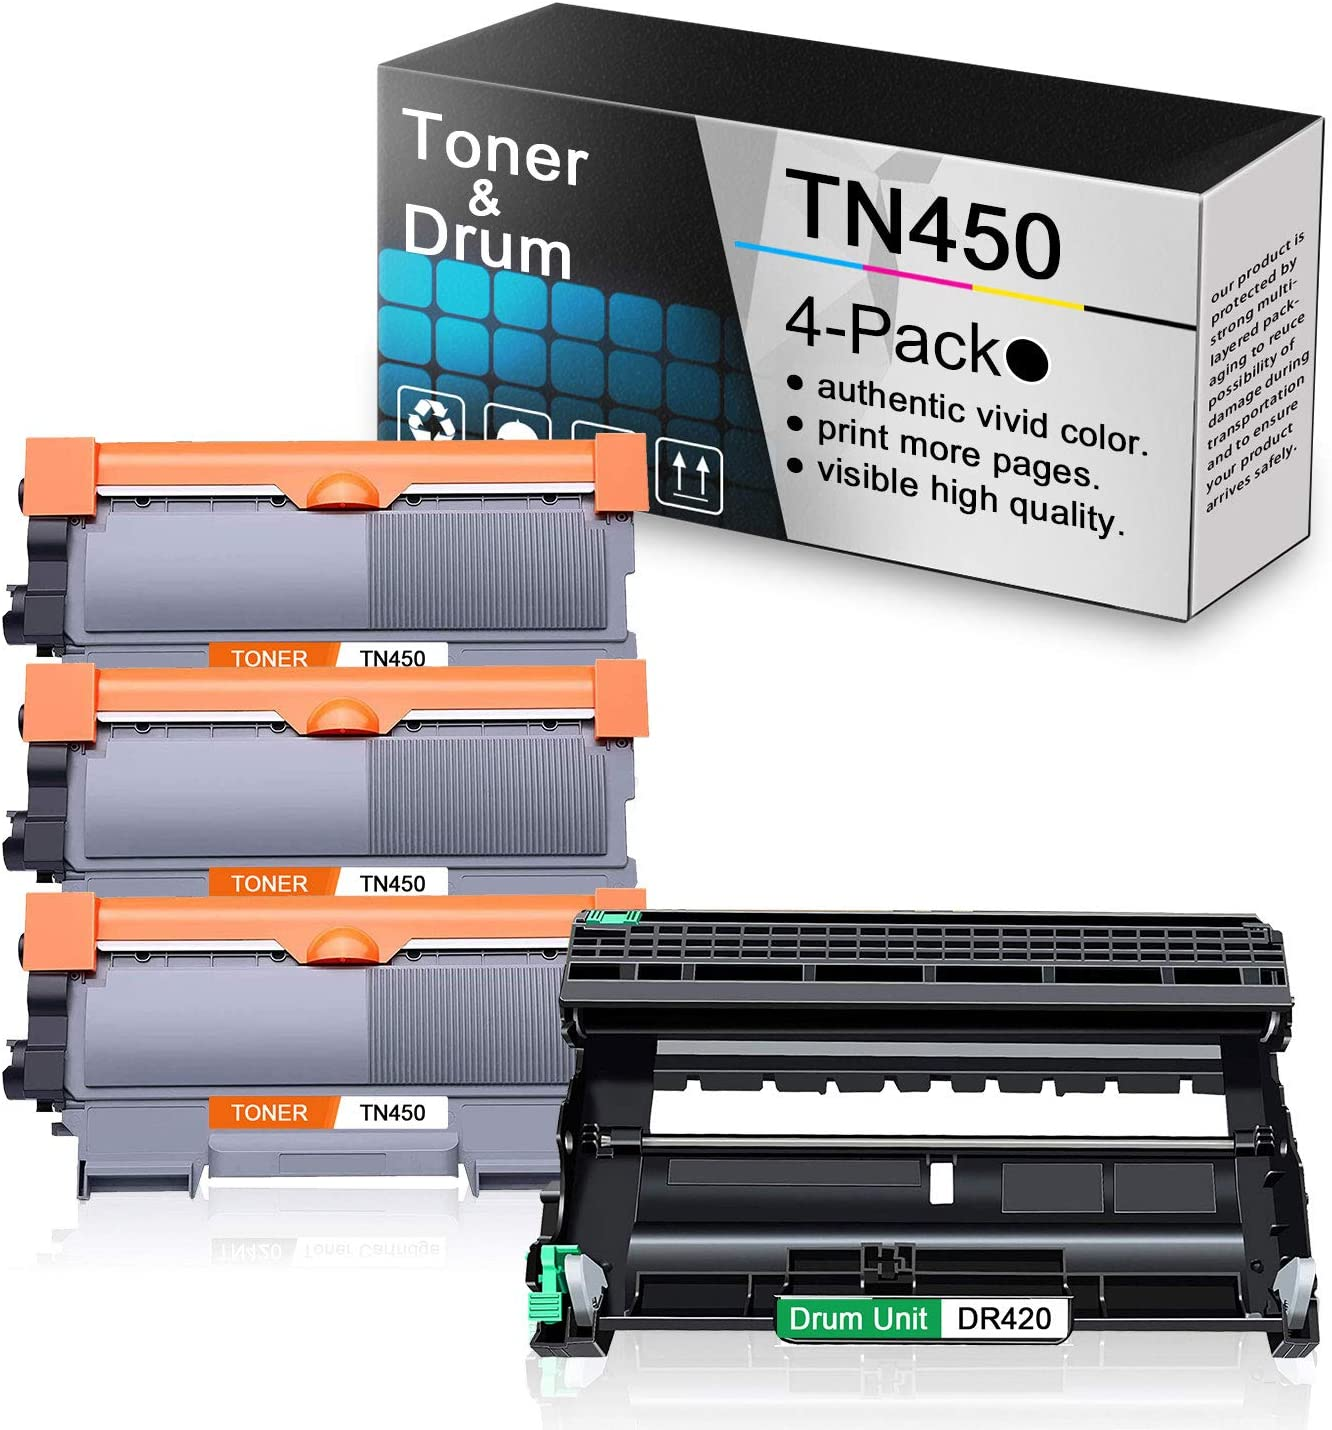 Replacement for TN450 Black Toner Cartridge 3 Pack and DR420 Drum Unit 1 Pack Compatible for Brother DCP-7060D 7065D Intellifax 2840 MFC-7240 7860DW HL-2130 2132 2240 2240D 2250DN 2280DW Printers.